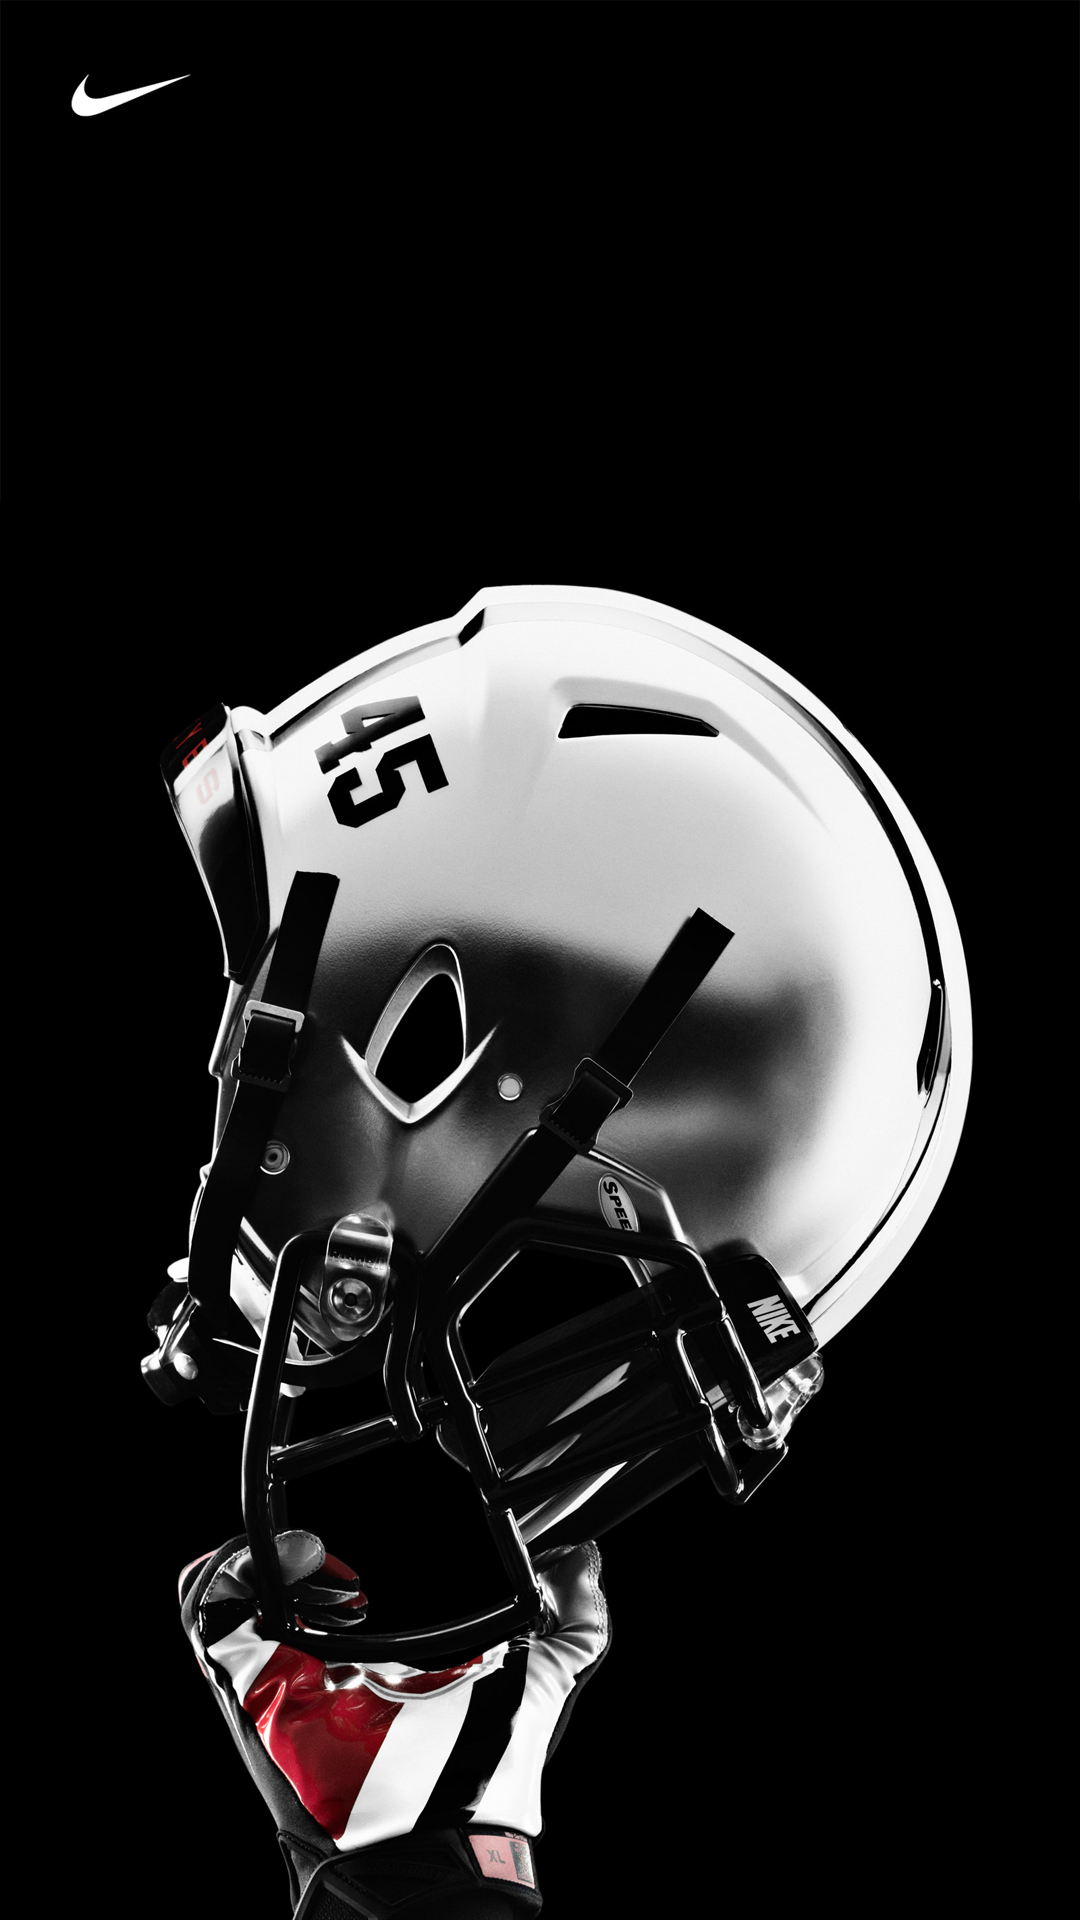 Ohio State Nike Pro Combat Football Uniform Helmet 1080x1920